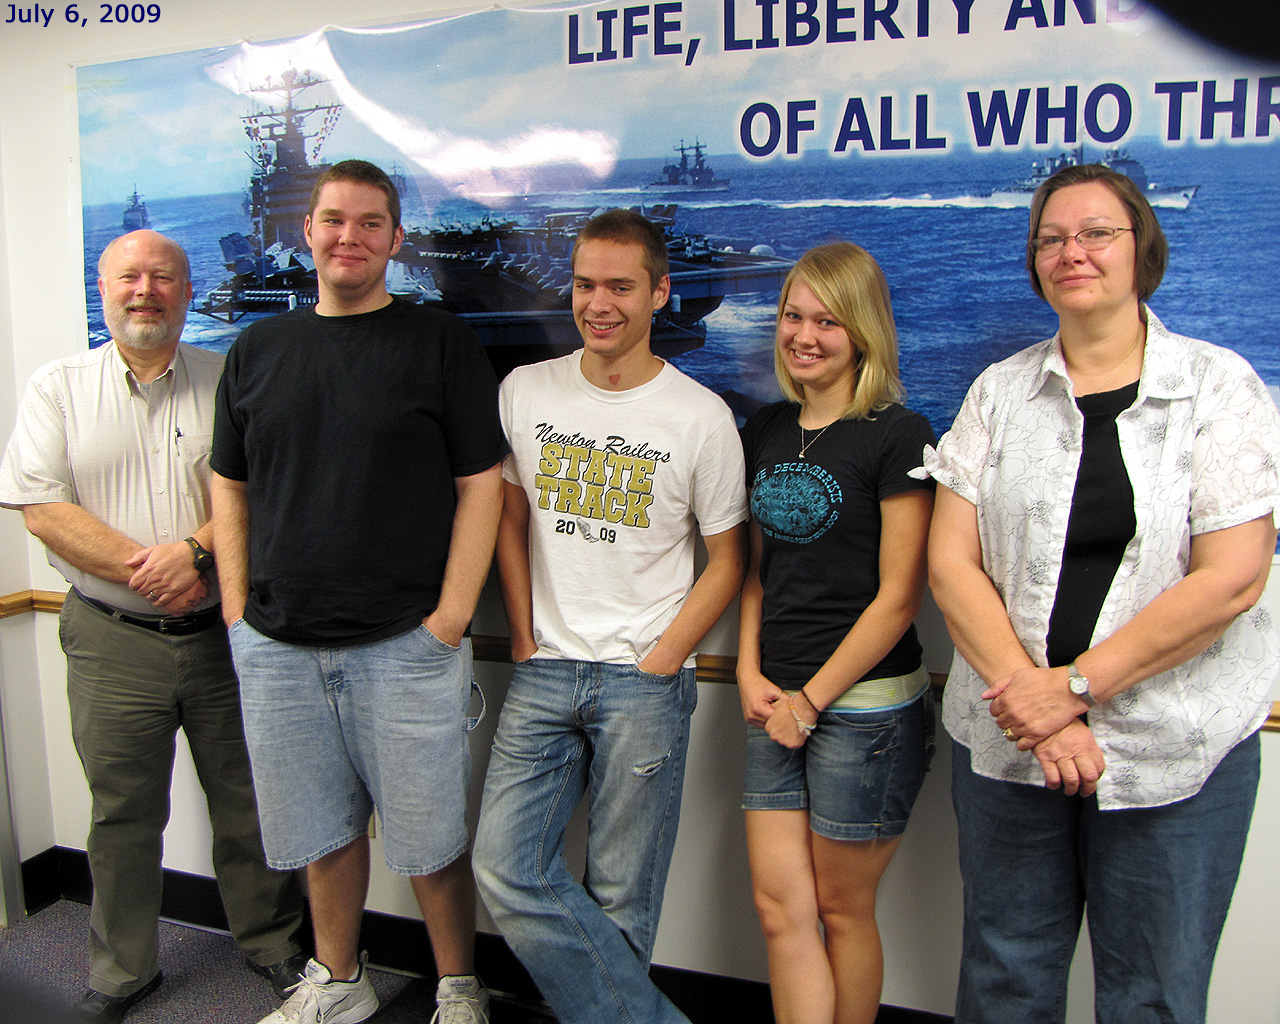 Photo: Hutchinson, KS area Recruiting Office.  A few minutes before K. Henry left for boot camp @ Naval Station Great Lakes, North Chicago, IL 06-Jul-09. (photo taken by YN2 Michael Adams)